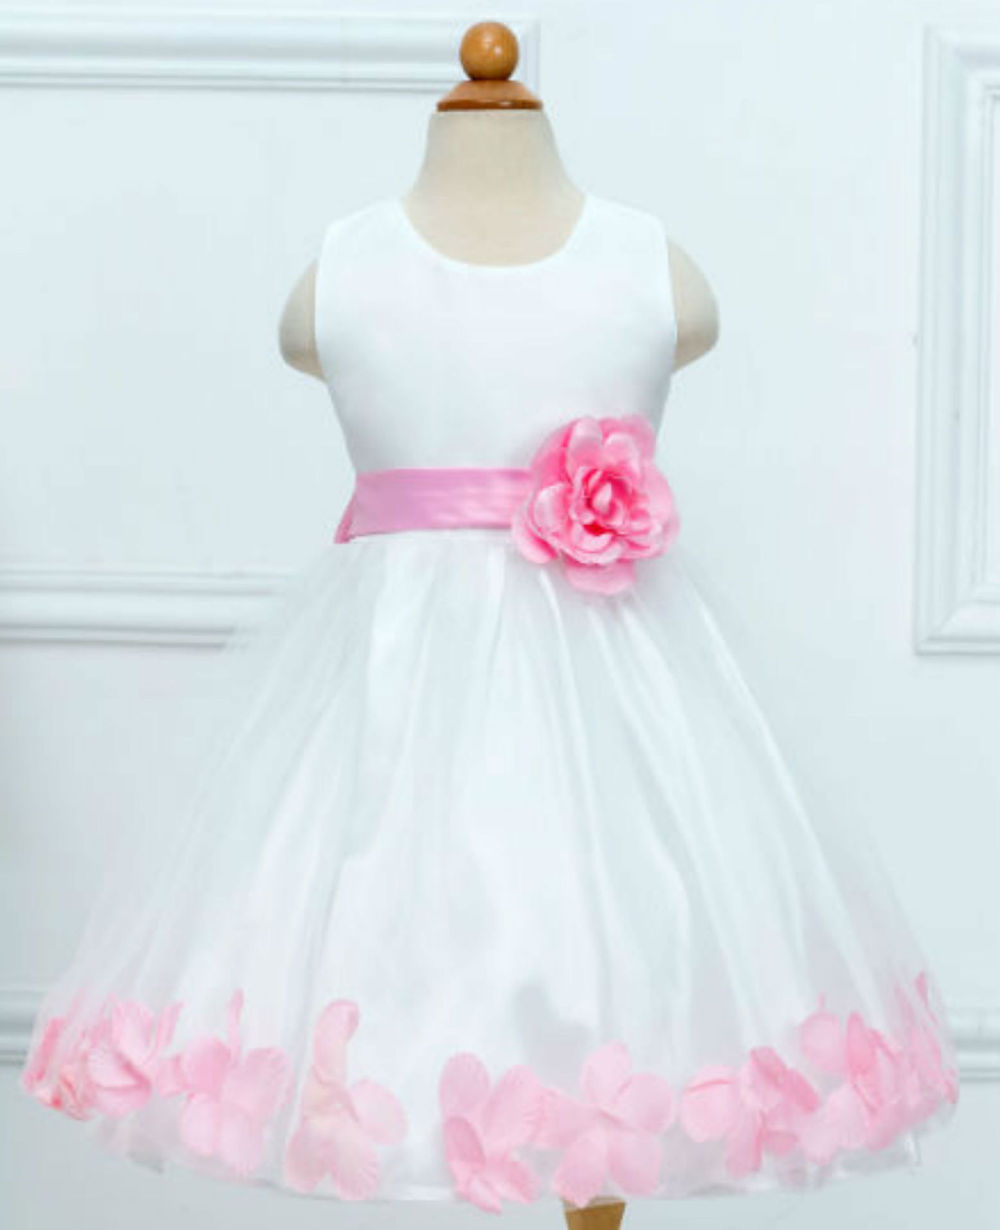 Pic 1 Girls Baby Toddler Ballet Tutu Skirt Pettiskirt 40 Colors Us Seller. Buenos Ninos Girl's Tutu Assorted Colors Free Size for T. by Buenos Ninos. $ - $ $ 6 $ 6 99 Prime. FREE Shipping on eligible orders. Some colors are Prime eligible. out of 5 stars